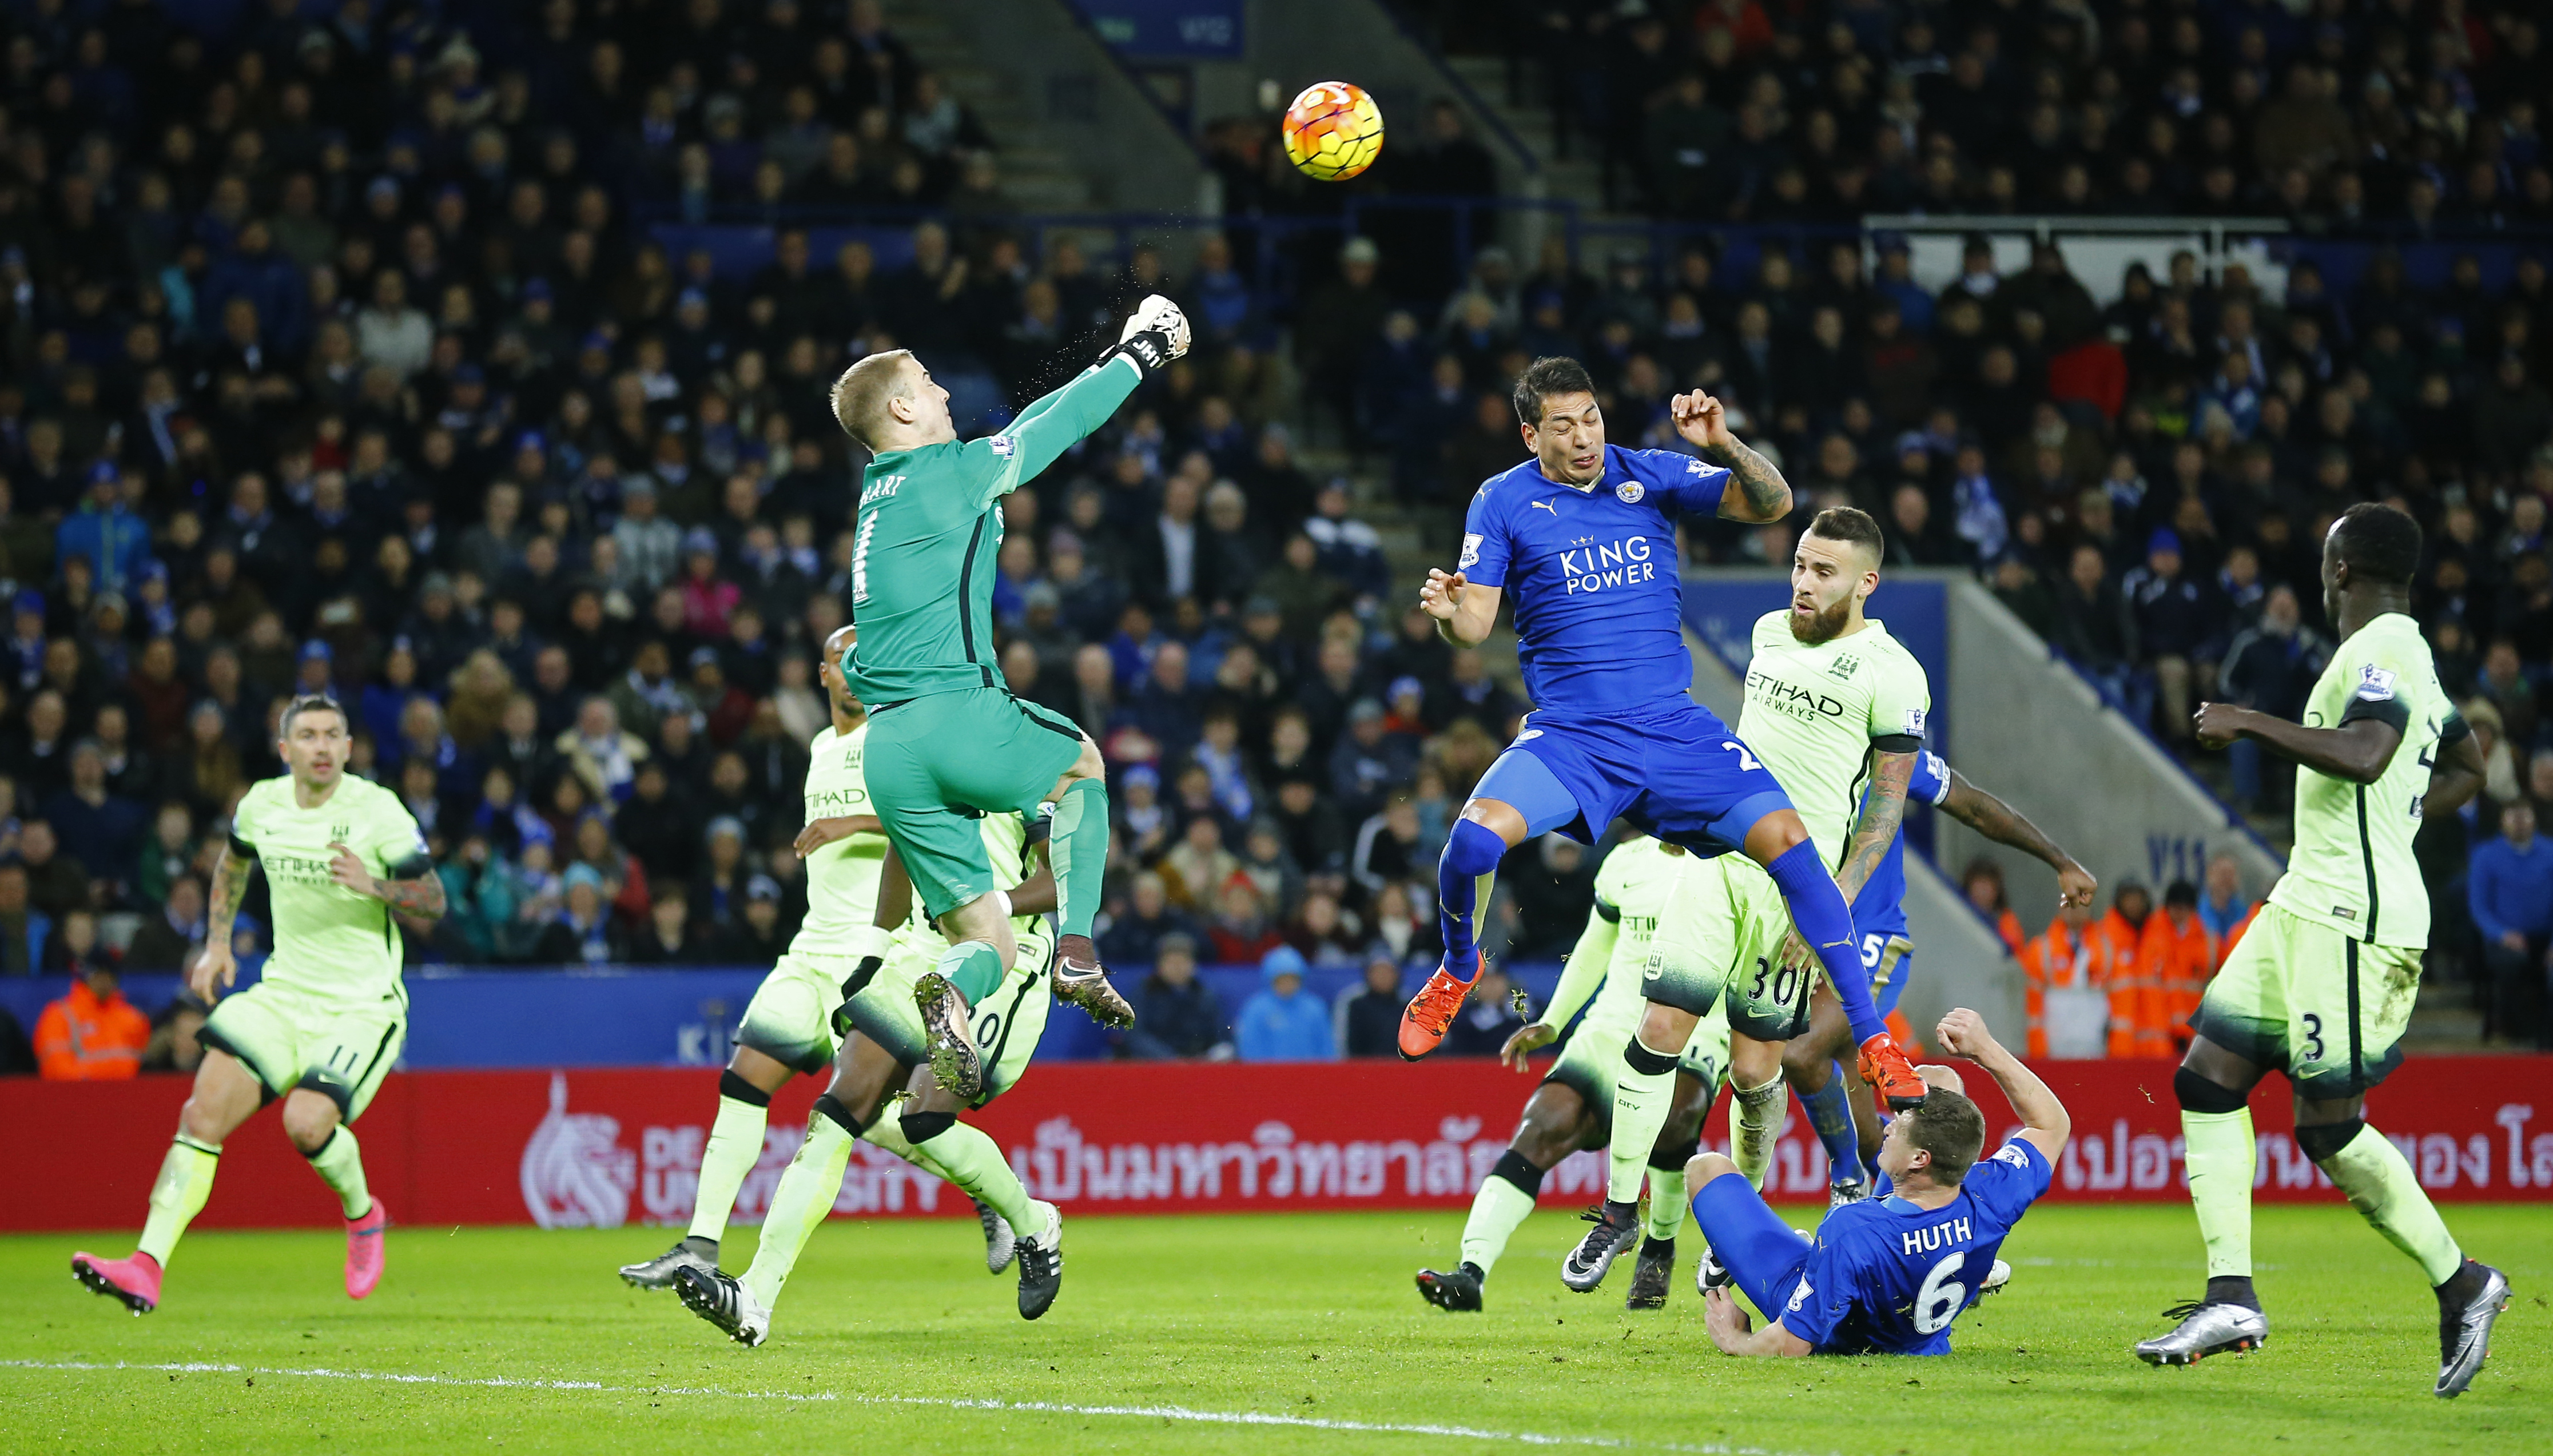 Leicester City's Leonardo Ulloa and Manchester City's Joe Hart in action at King Power Stadium on Tuesday, December 29, 2015. Photo: Reuters